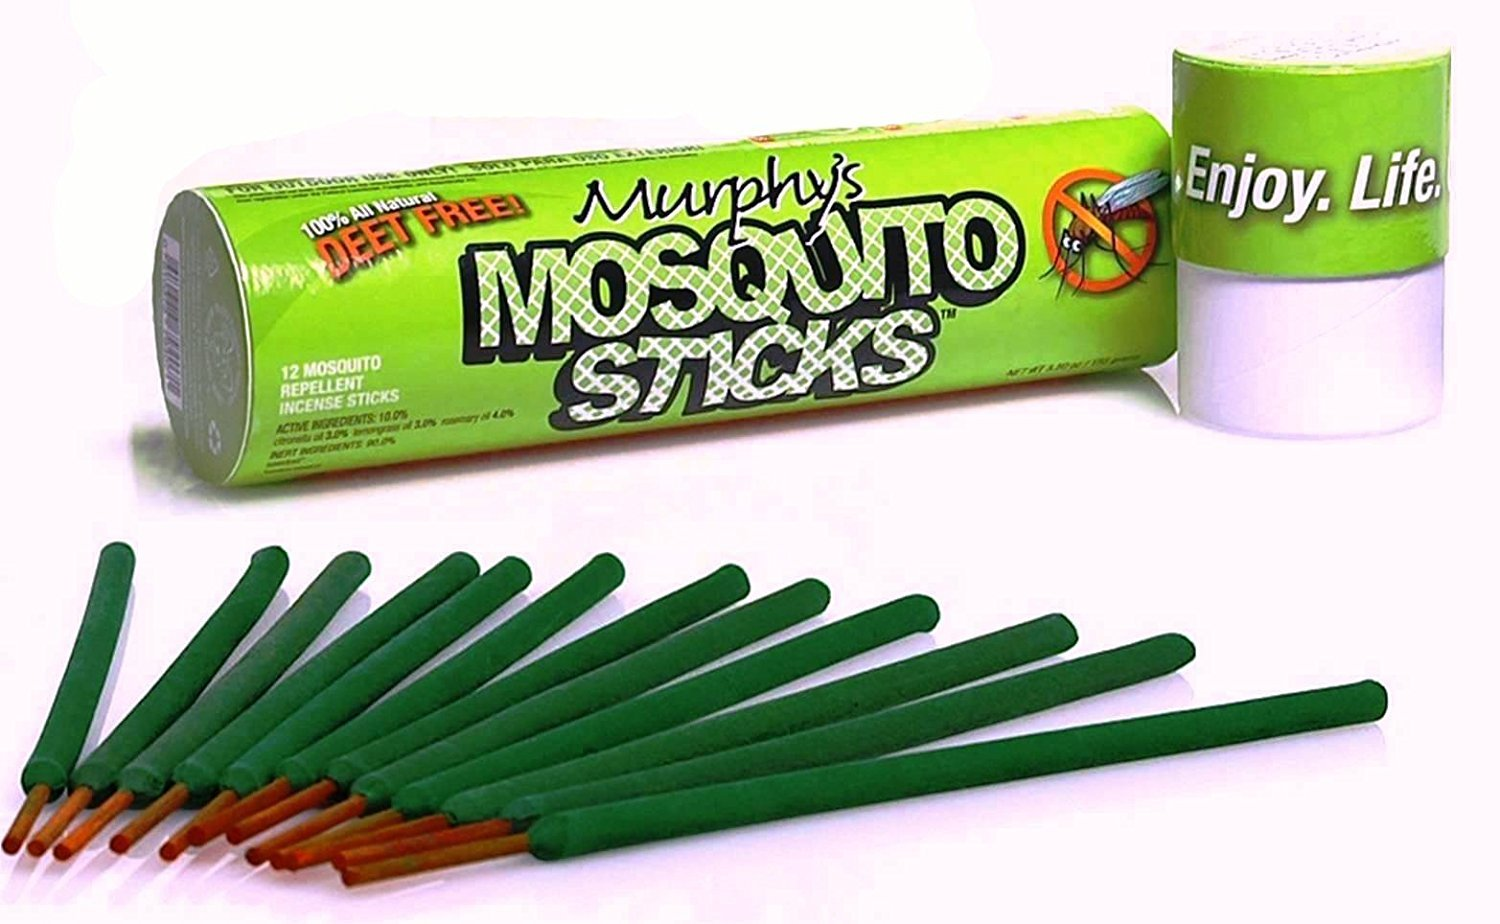 Murphys Mosquito Sticks Natural And Deet Free Insect Repellent Circuitbest Repellentindoor Incense Stick Bamboo Infused With Citronella Lemongrass Rosemary